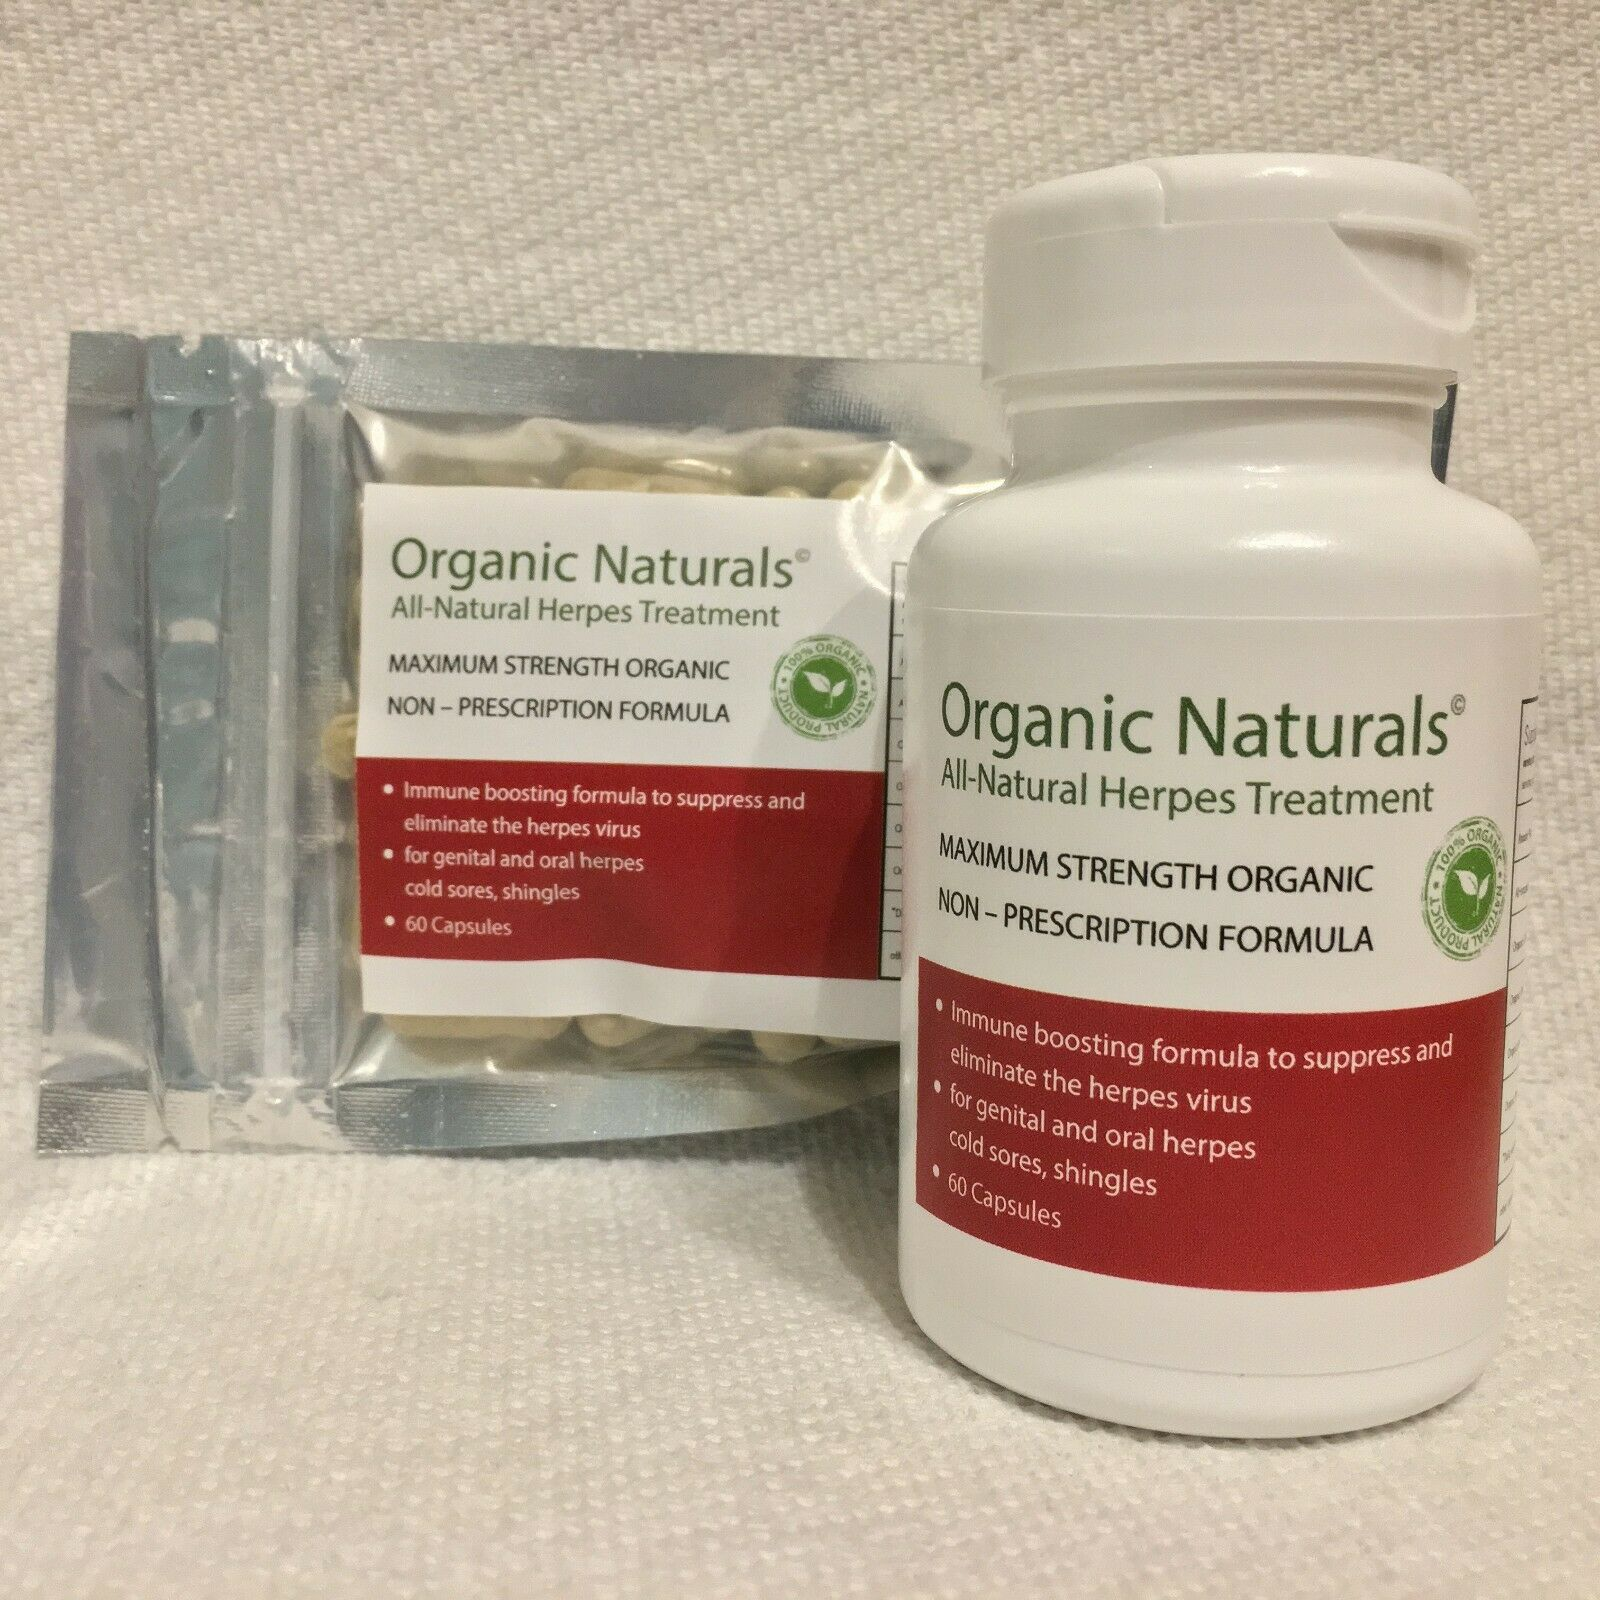 All-Natural Herpes Treatment Capsules - by Organic Naturals - 60 Capsules